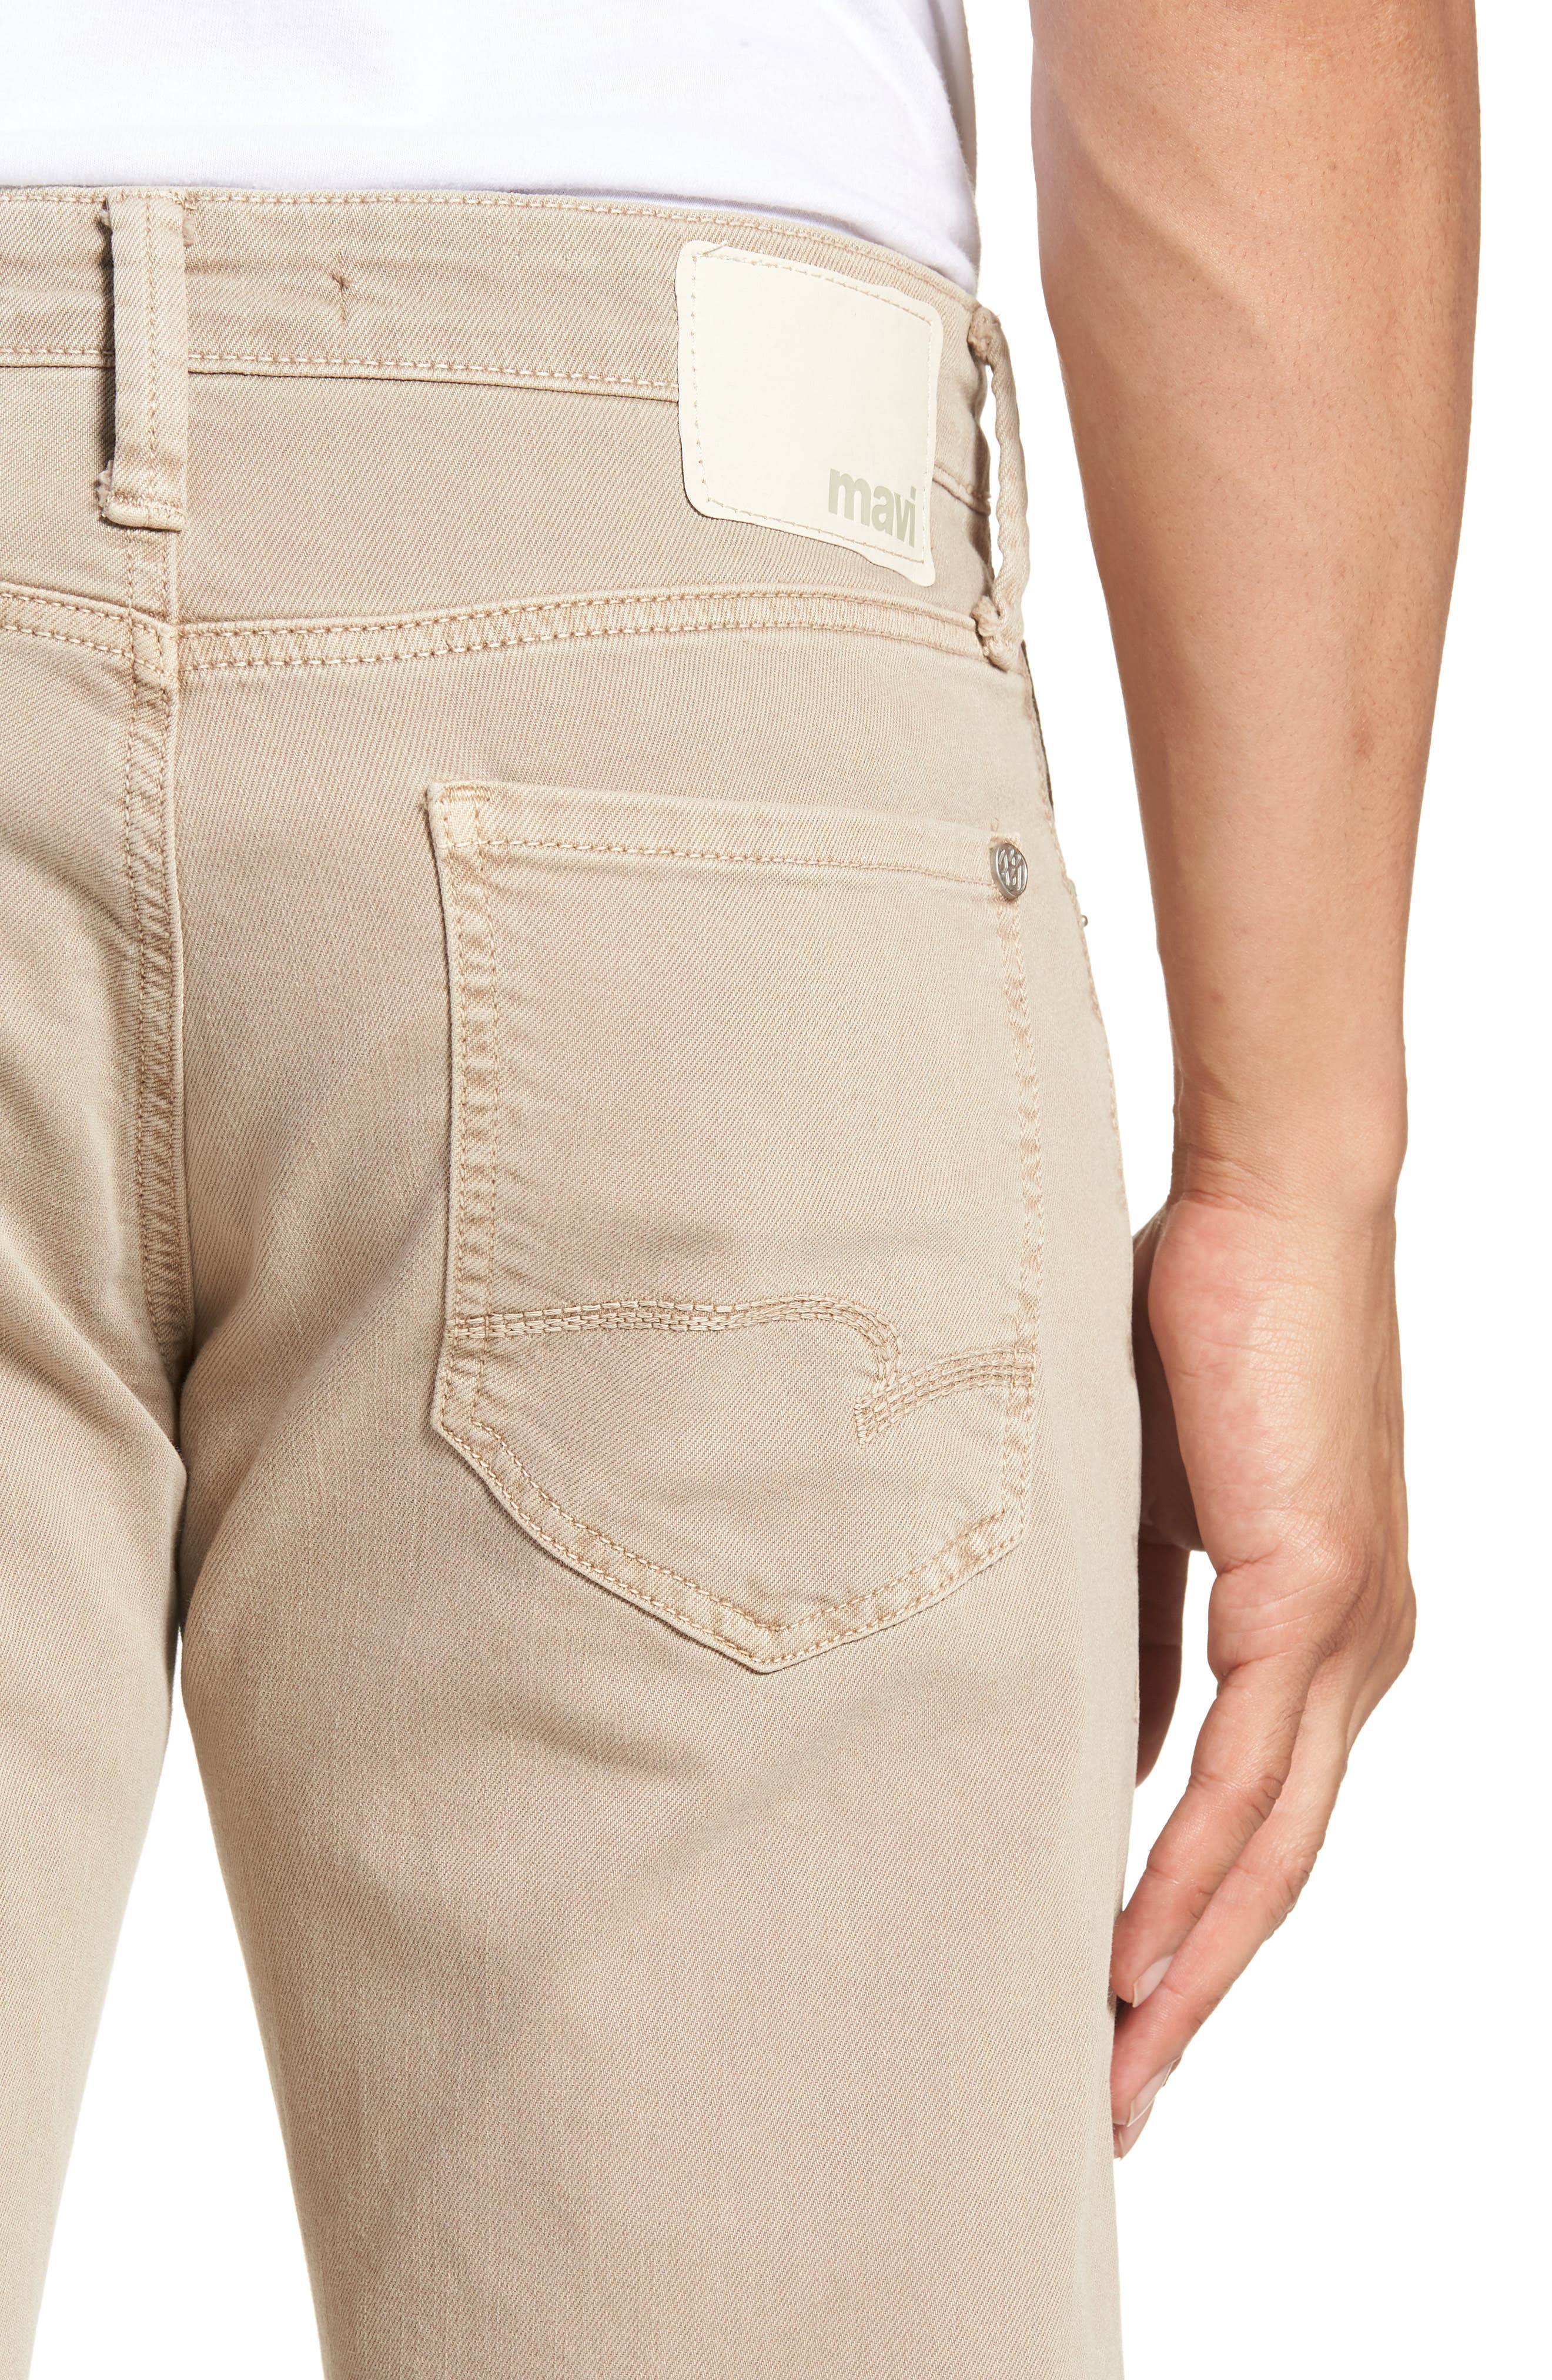 Zach Straight Leg Twill Pants,                             Alternate thumbnail 4, color,                             Tan Washed